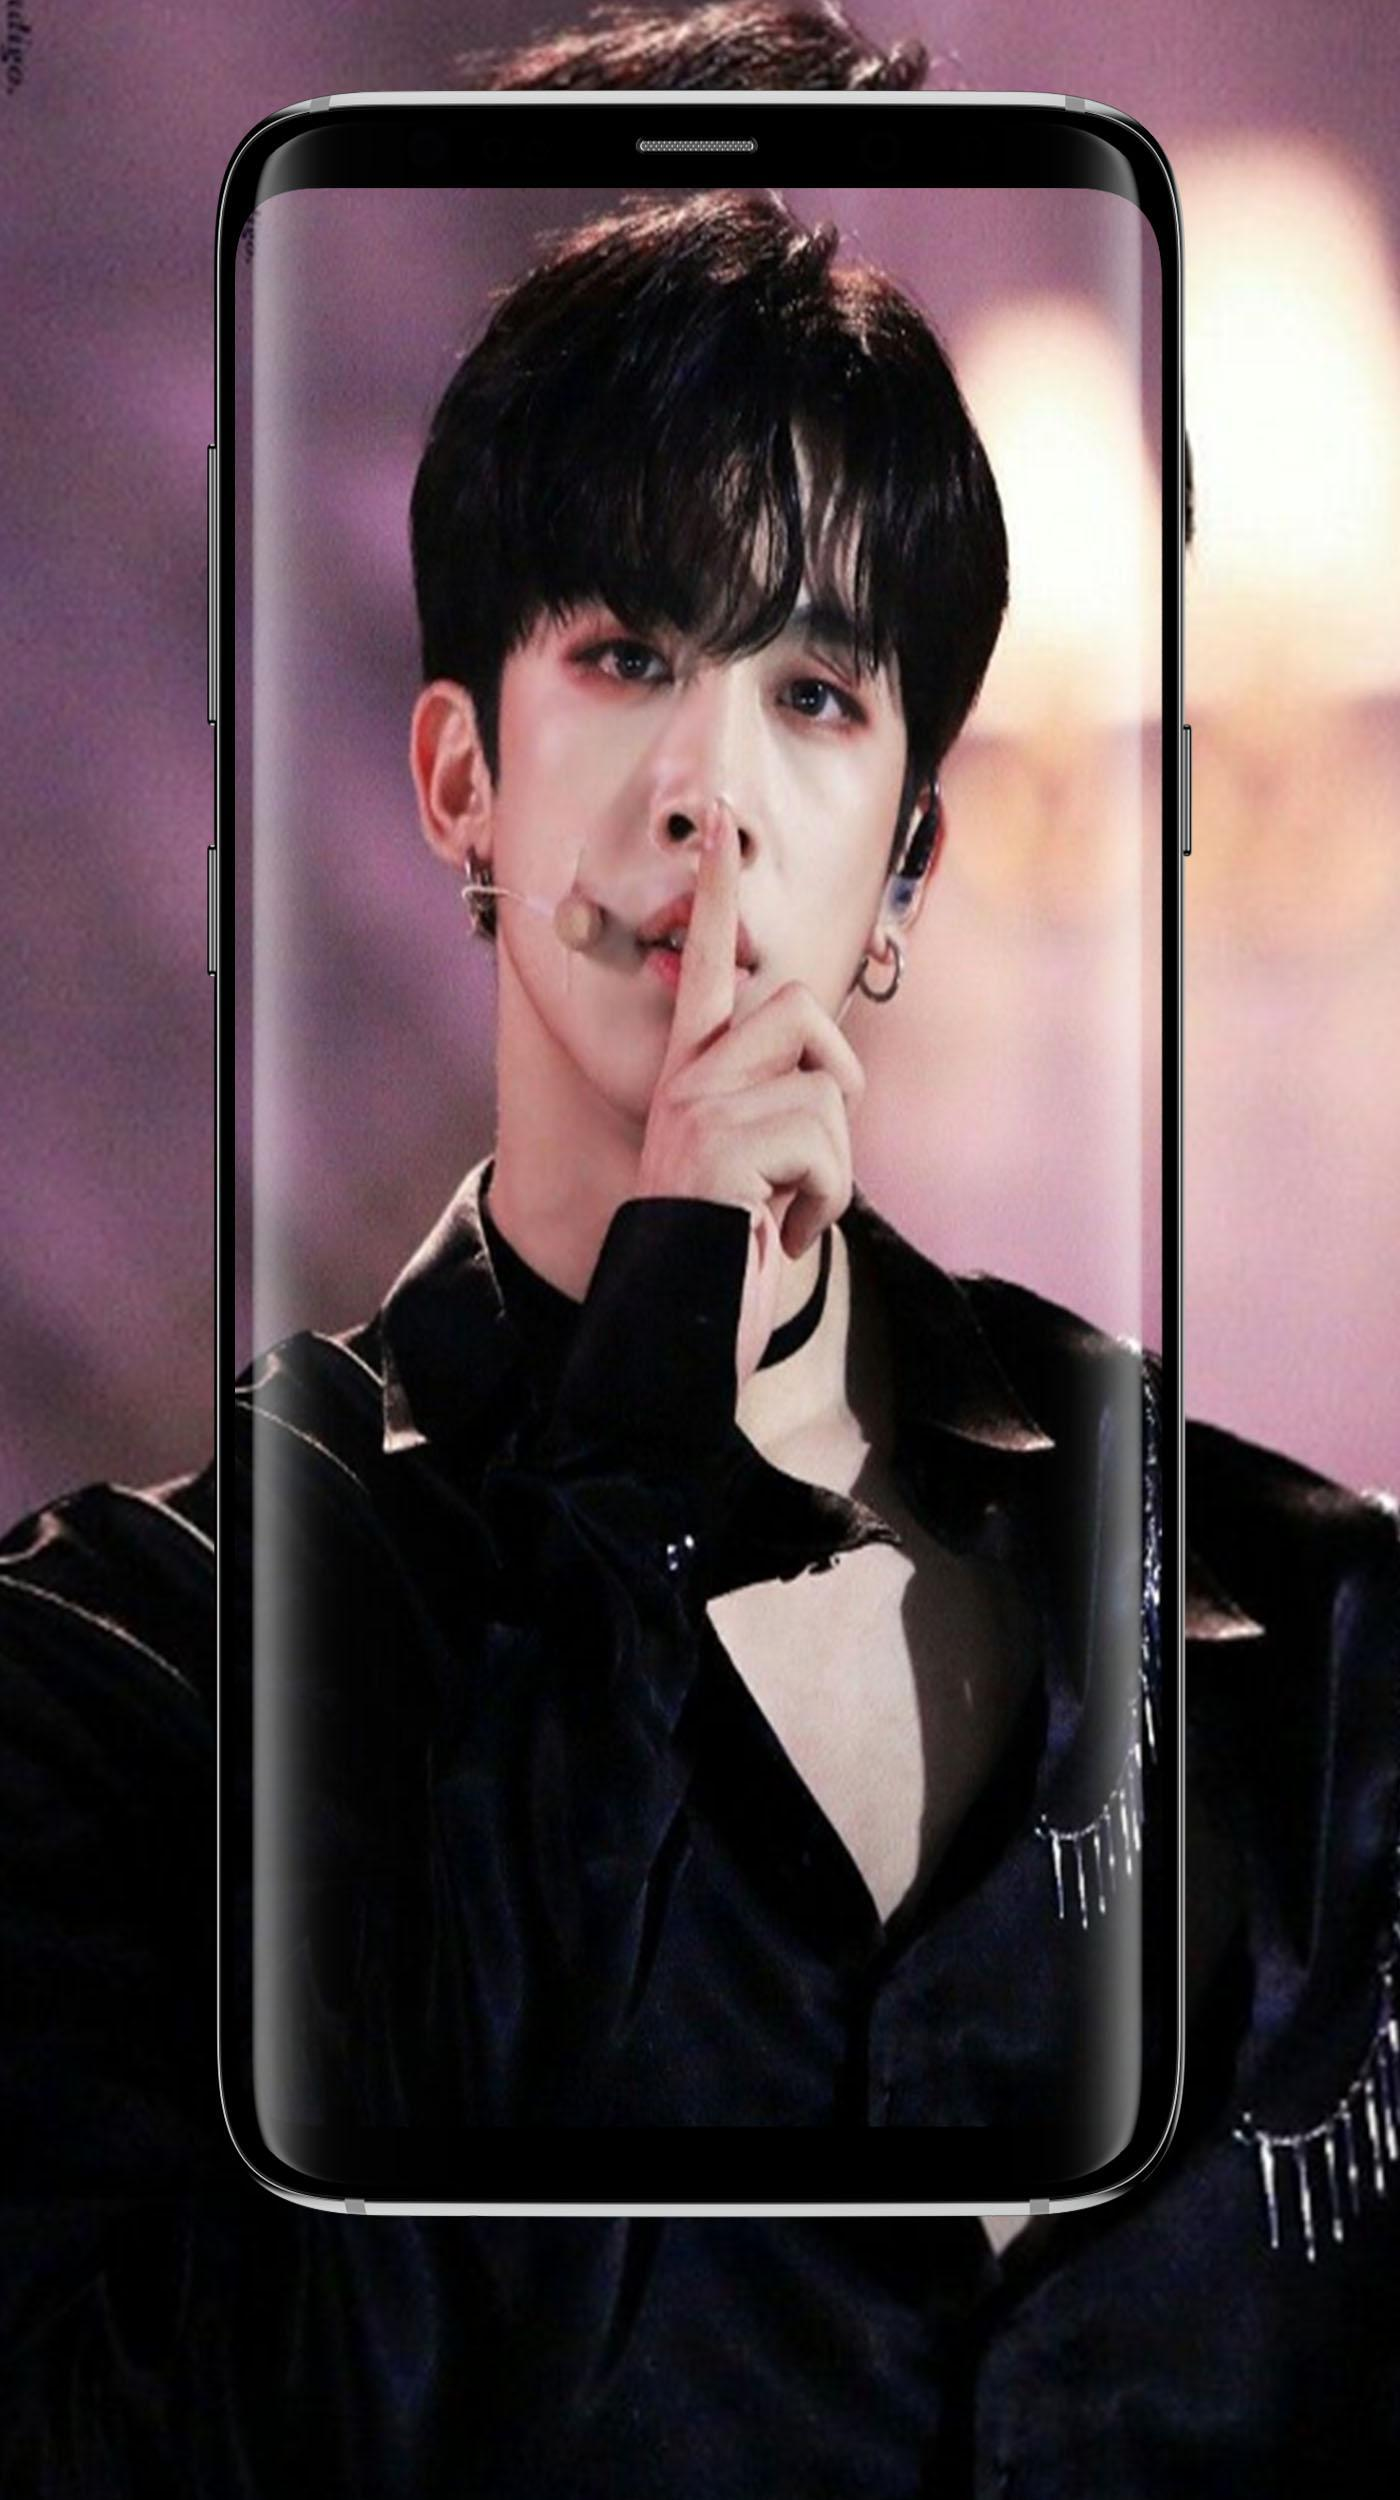 X1 Kim Yohan Wallpaper For Android Apk Download